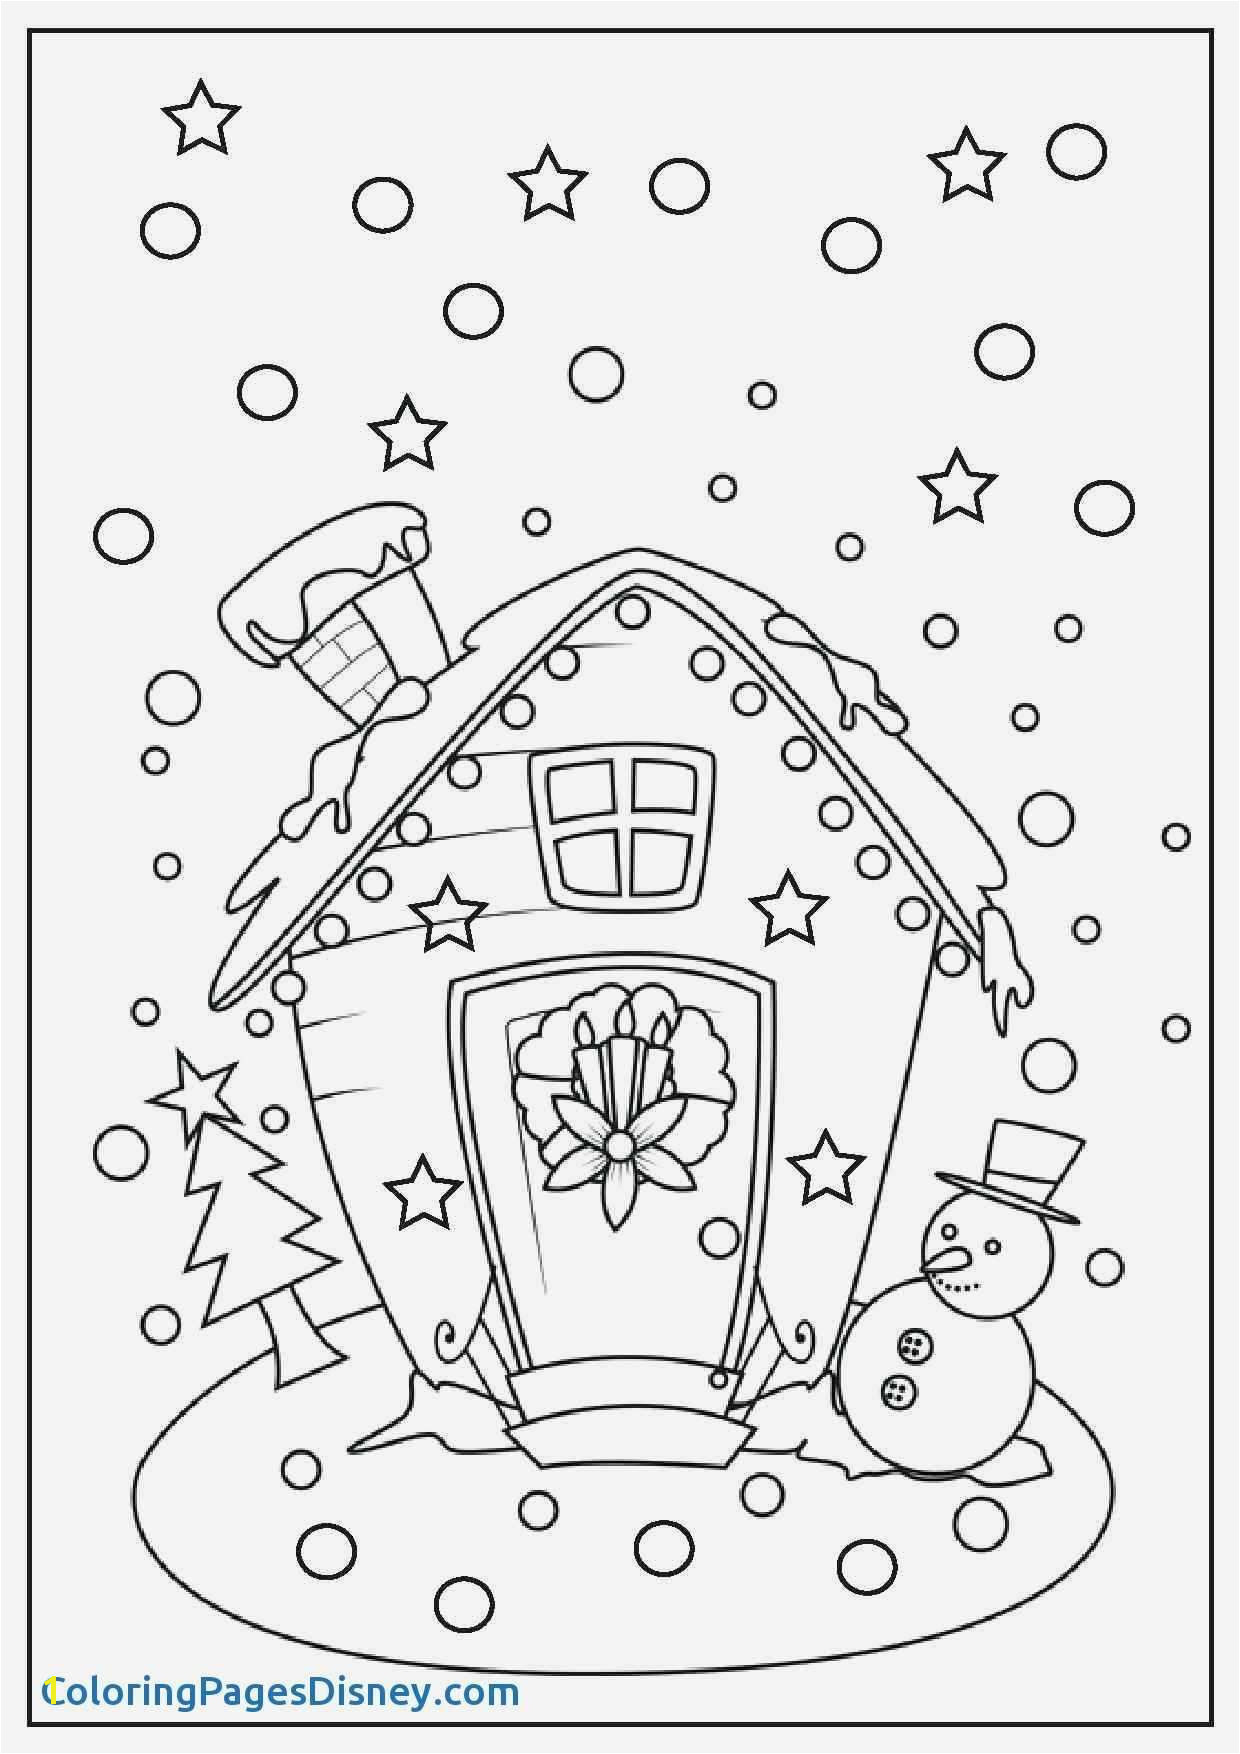 Free Christmas Elves Coloring Pages Cool Coloring Pages Printable New Printable Cds 0d Coloring Pages